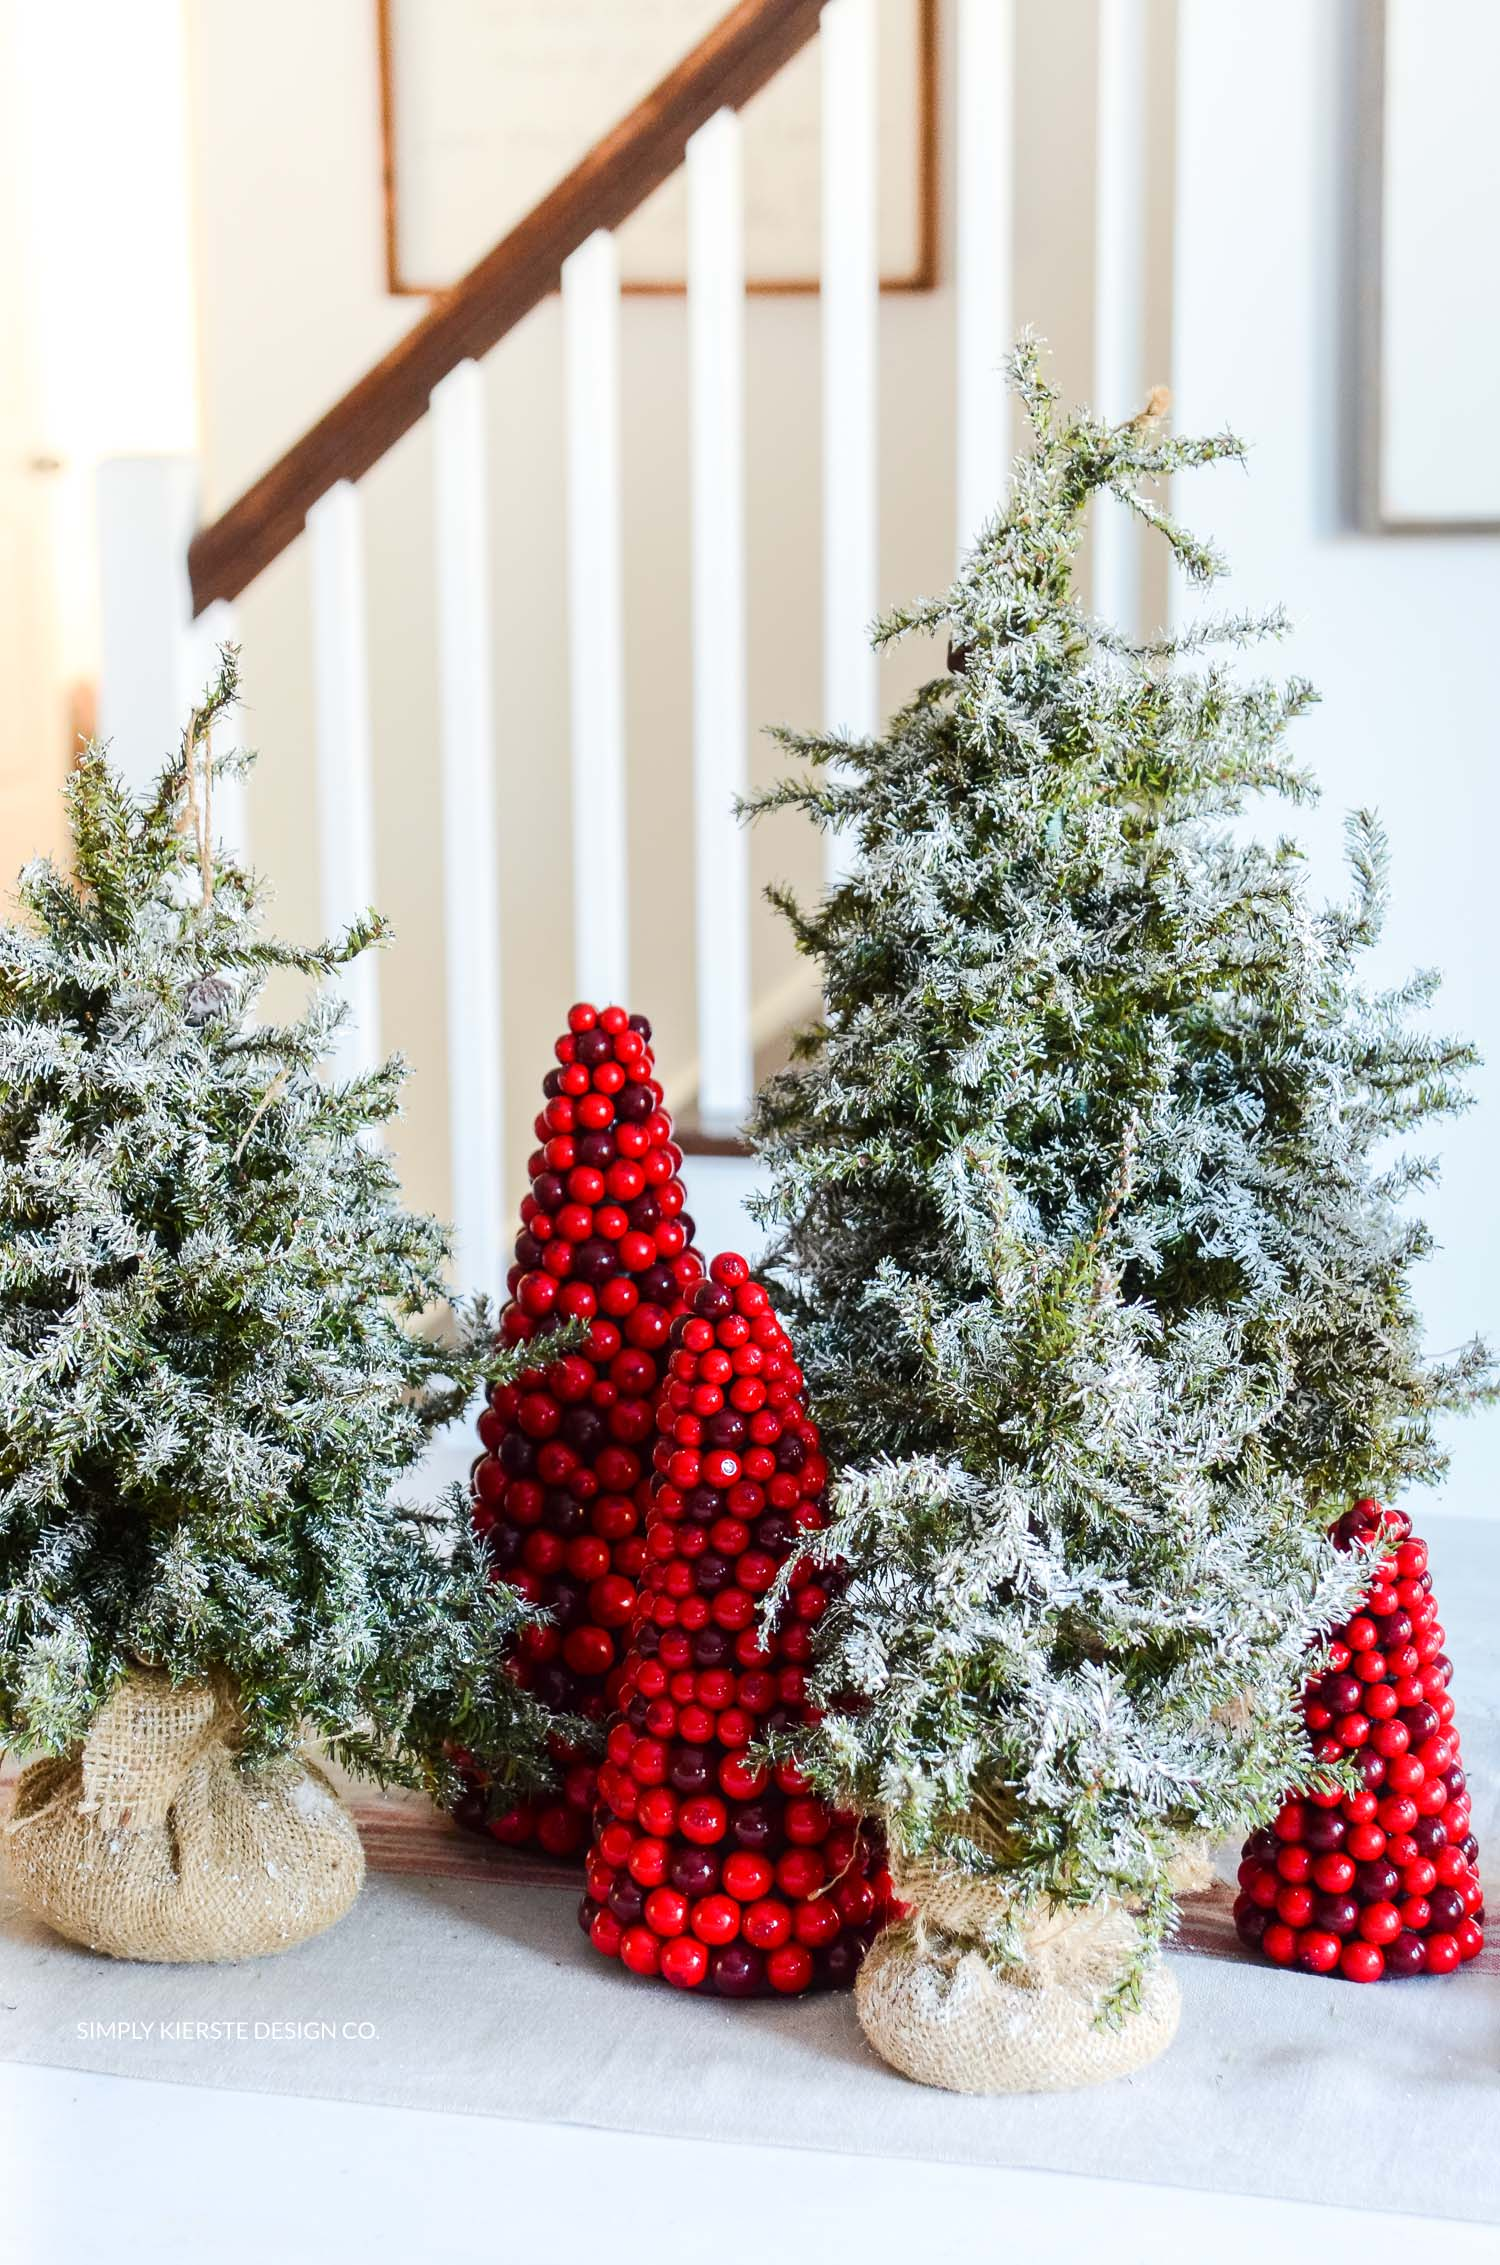 How to Flock a Christmas Tree the EASY way! | oldsaltfarm.com #diyflockedtree #flockedchristmastree